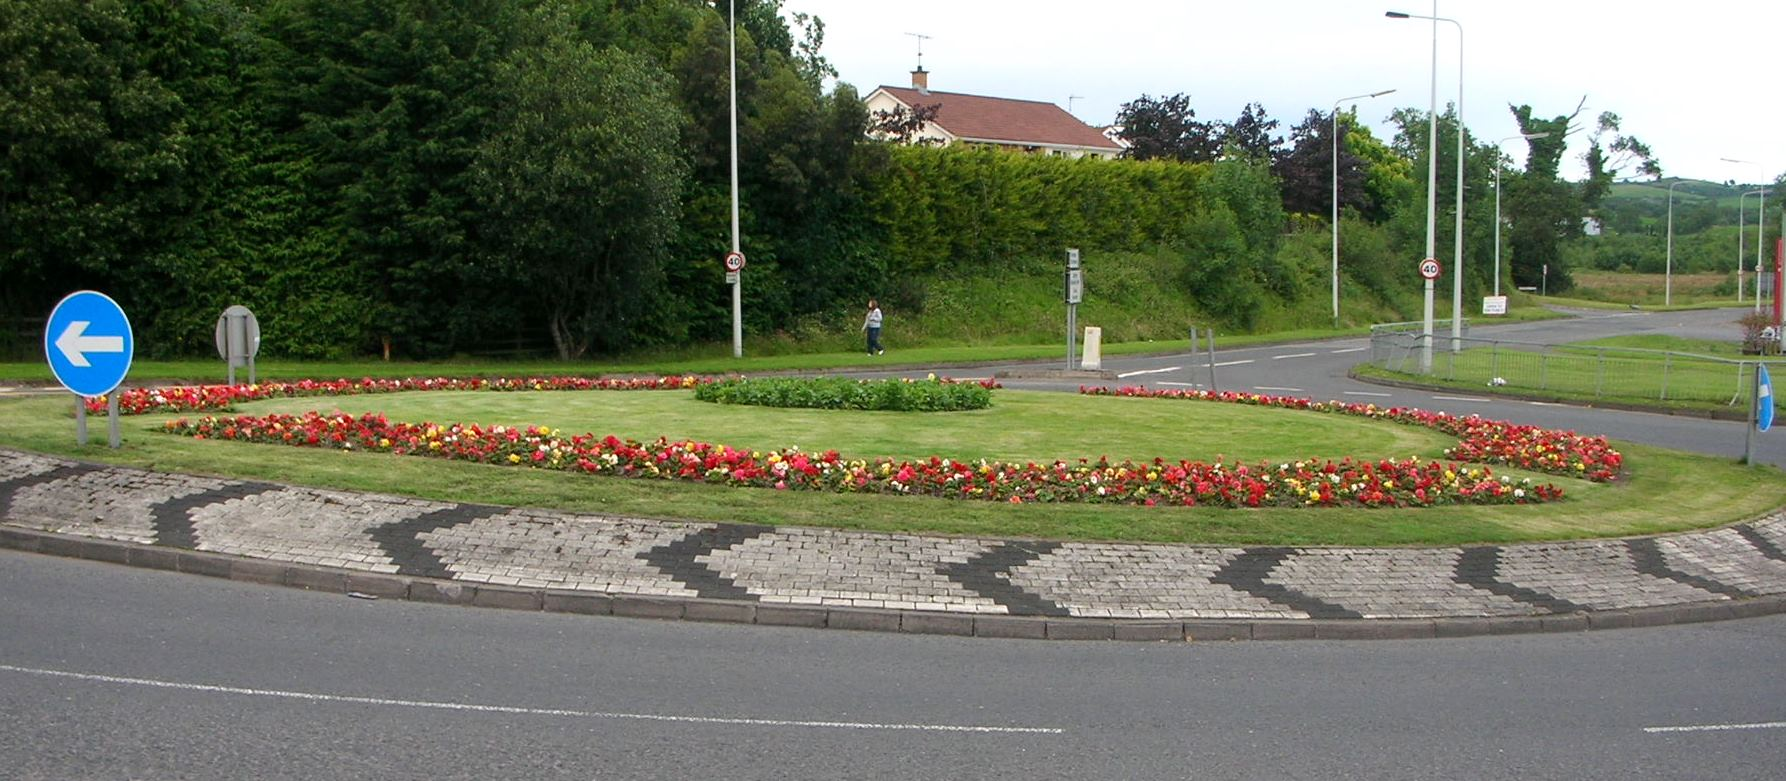 Council Invites Sponsorship Of Flowerbeds Fermanagh